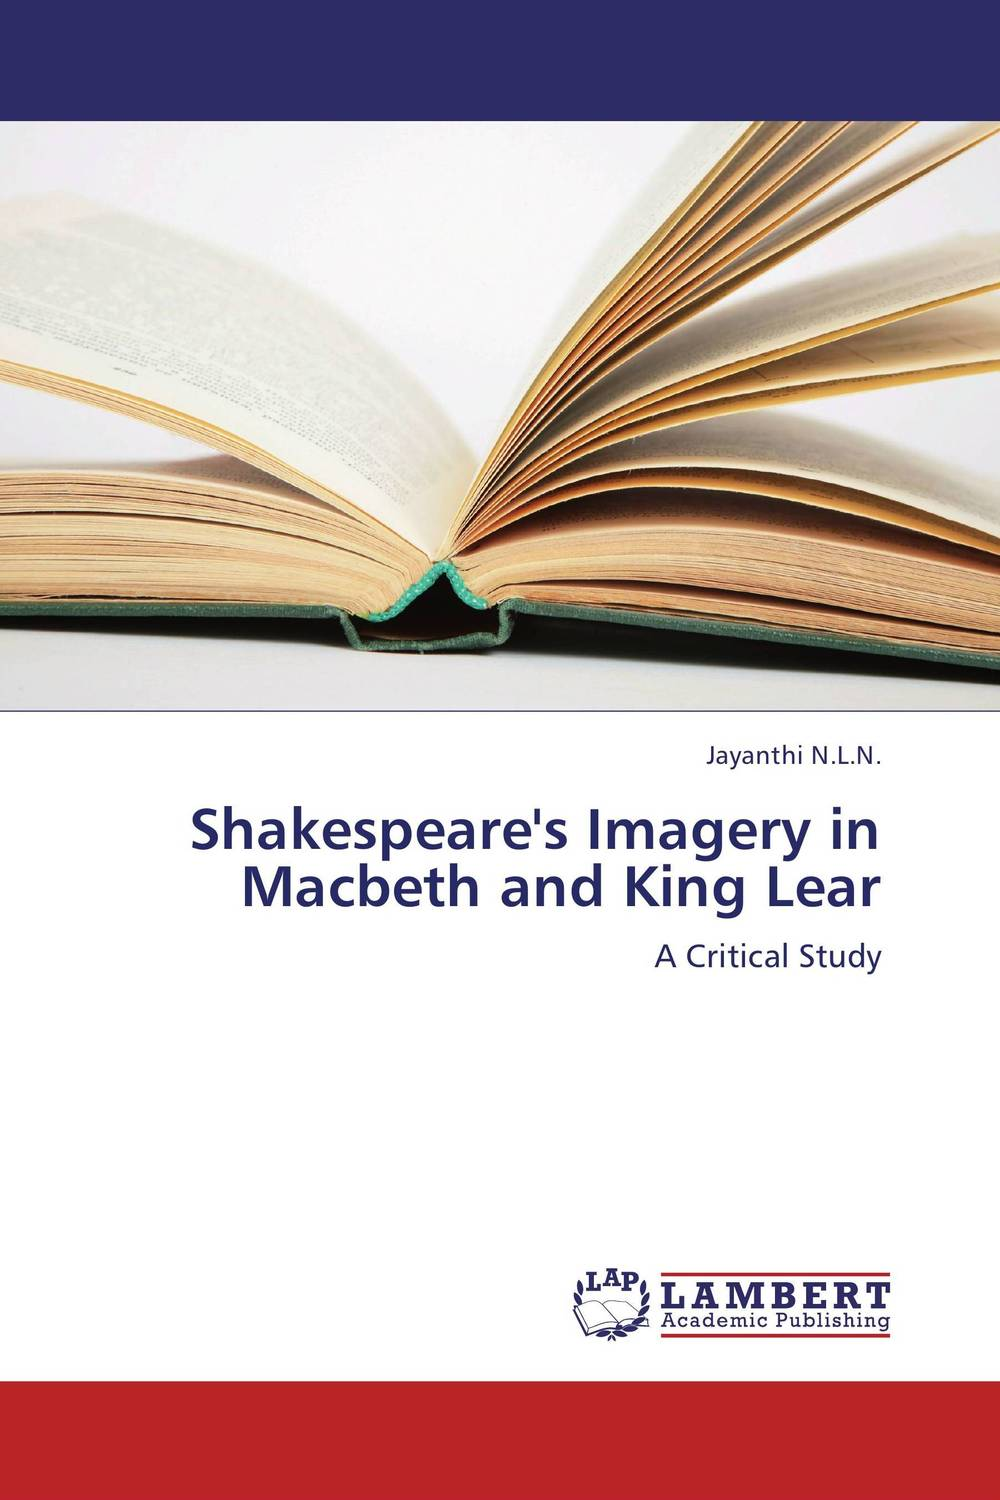 Shakespeare's Imagery in Macbeth and King Lear